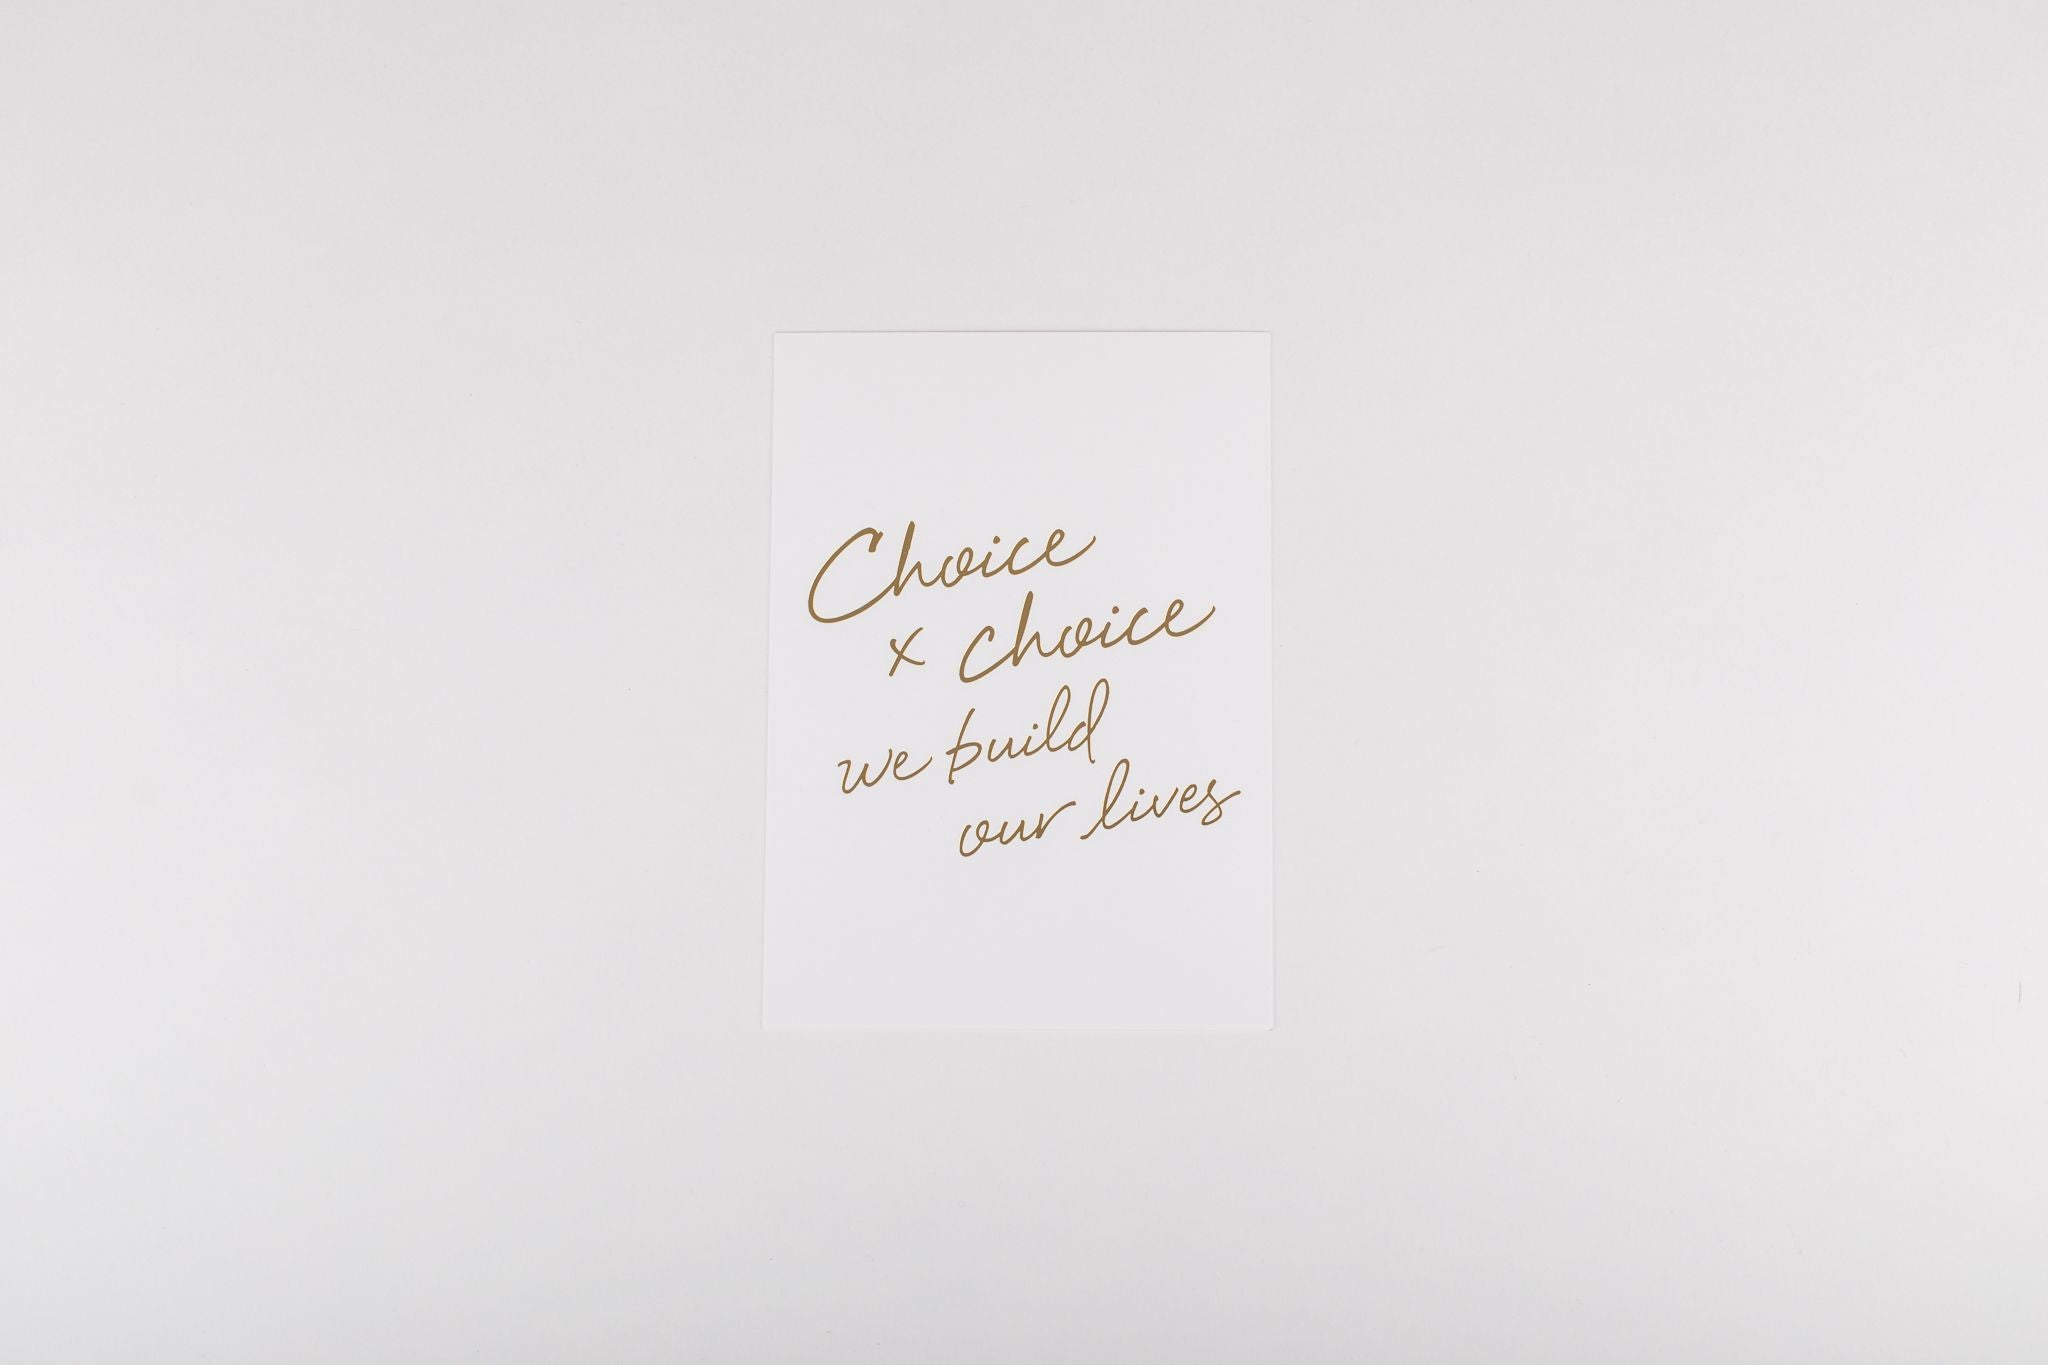 Art Print - Choice x Choice 5x7 White